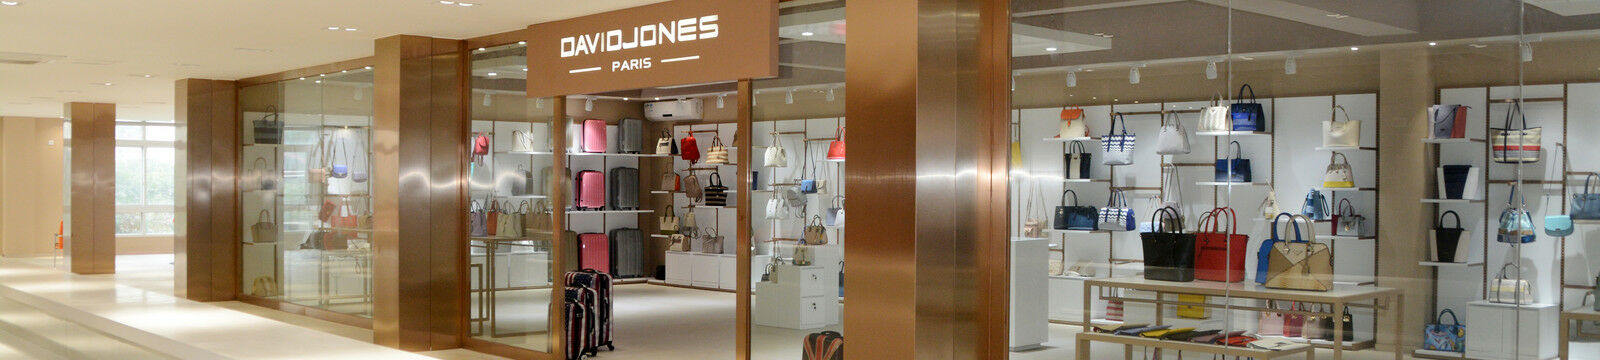 David Jones Paris